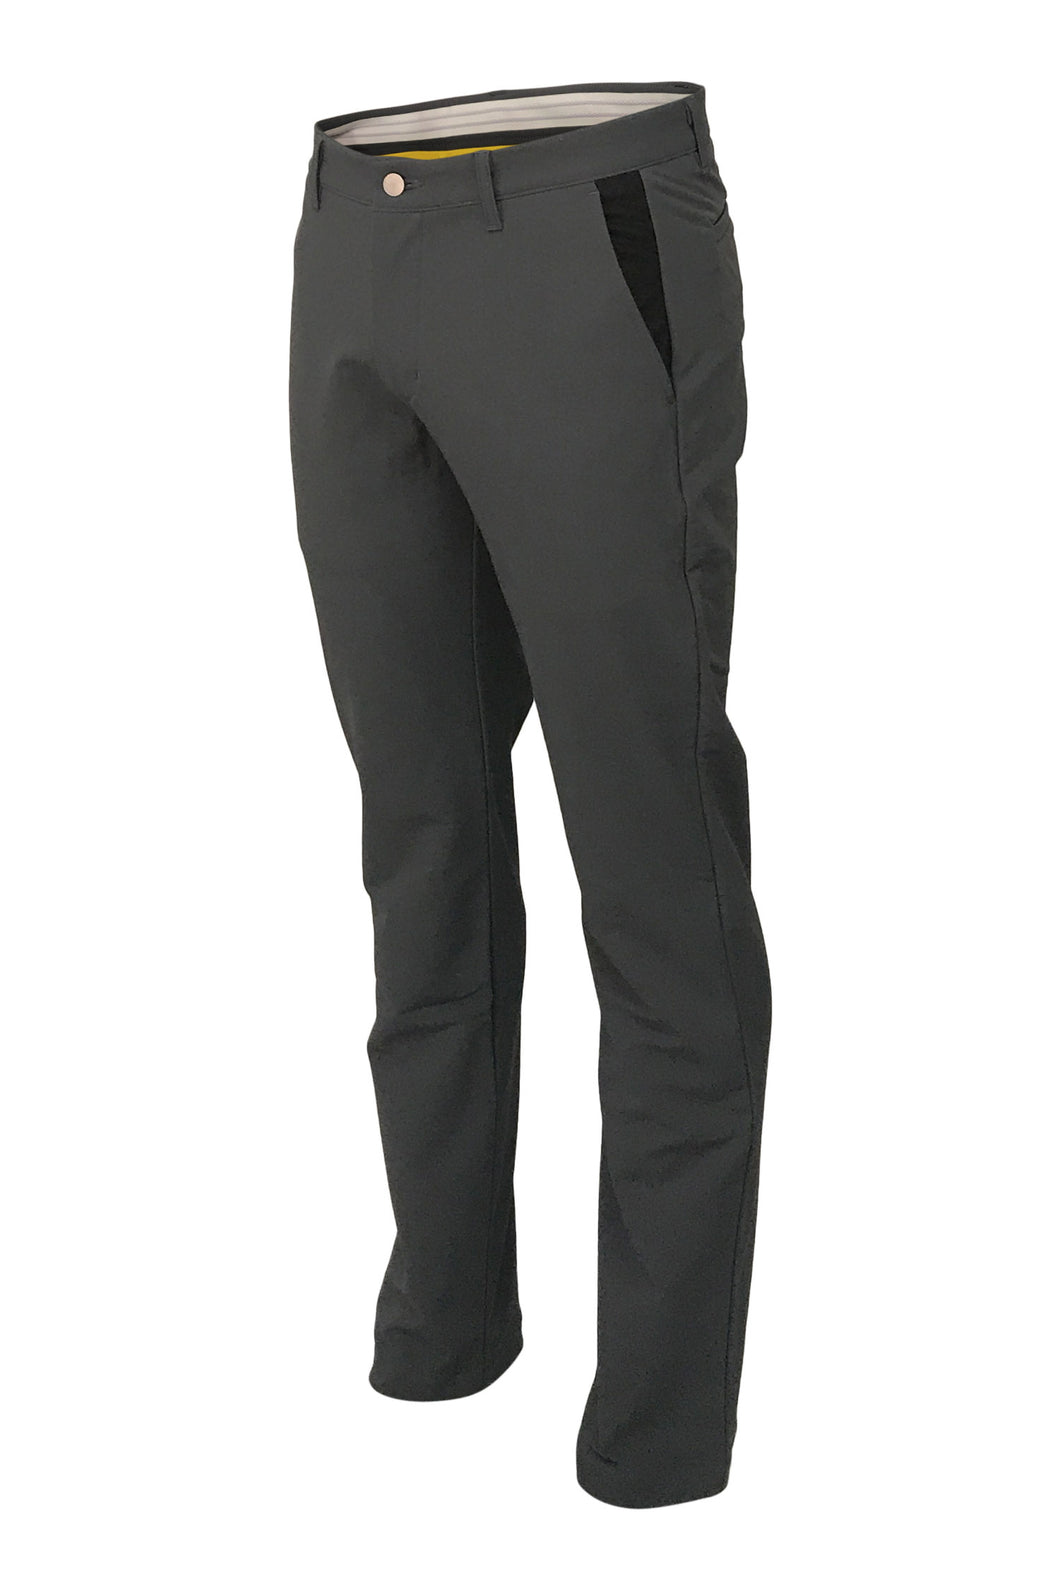 FAIRWAY PANTS - CHARCOAL